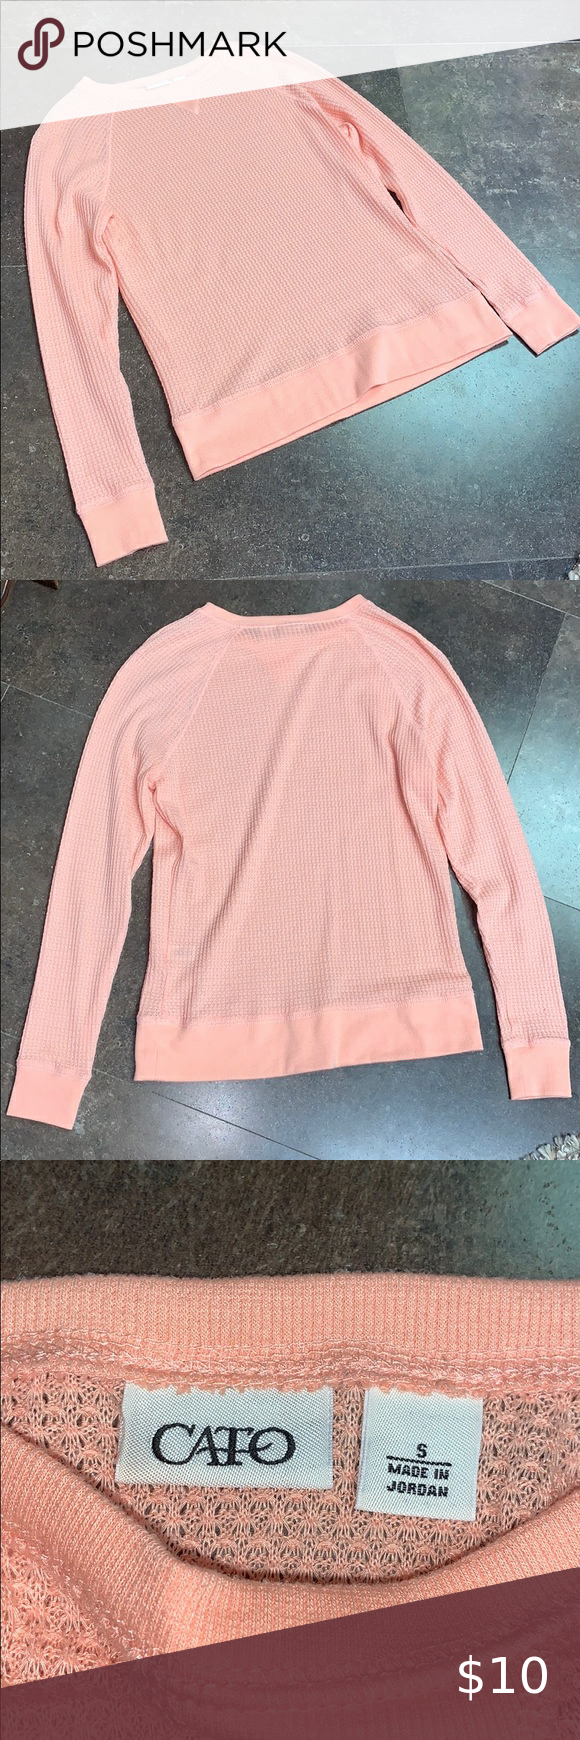 5 For 15 Cato Peach Pink Crewneck Sweater Pink Crewneck Crew Neck Sweater Sweaters [ 1740 x 580 Pixel ]